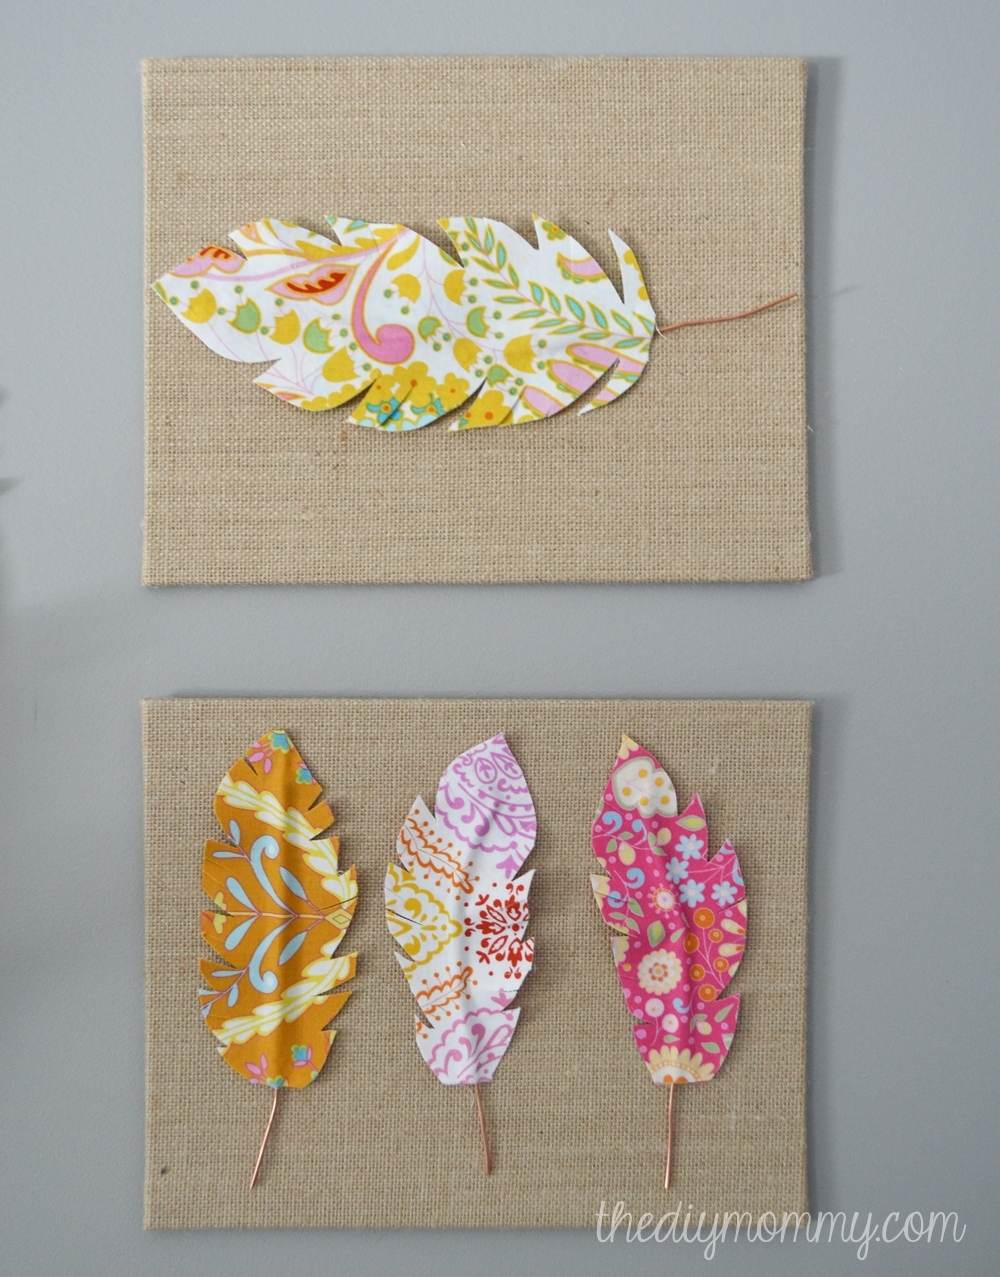 Make Fabric Feather Wall Art | The Diy Mommy In Most Current Fabric Covered Wall Art (View 13 of 15)